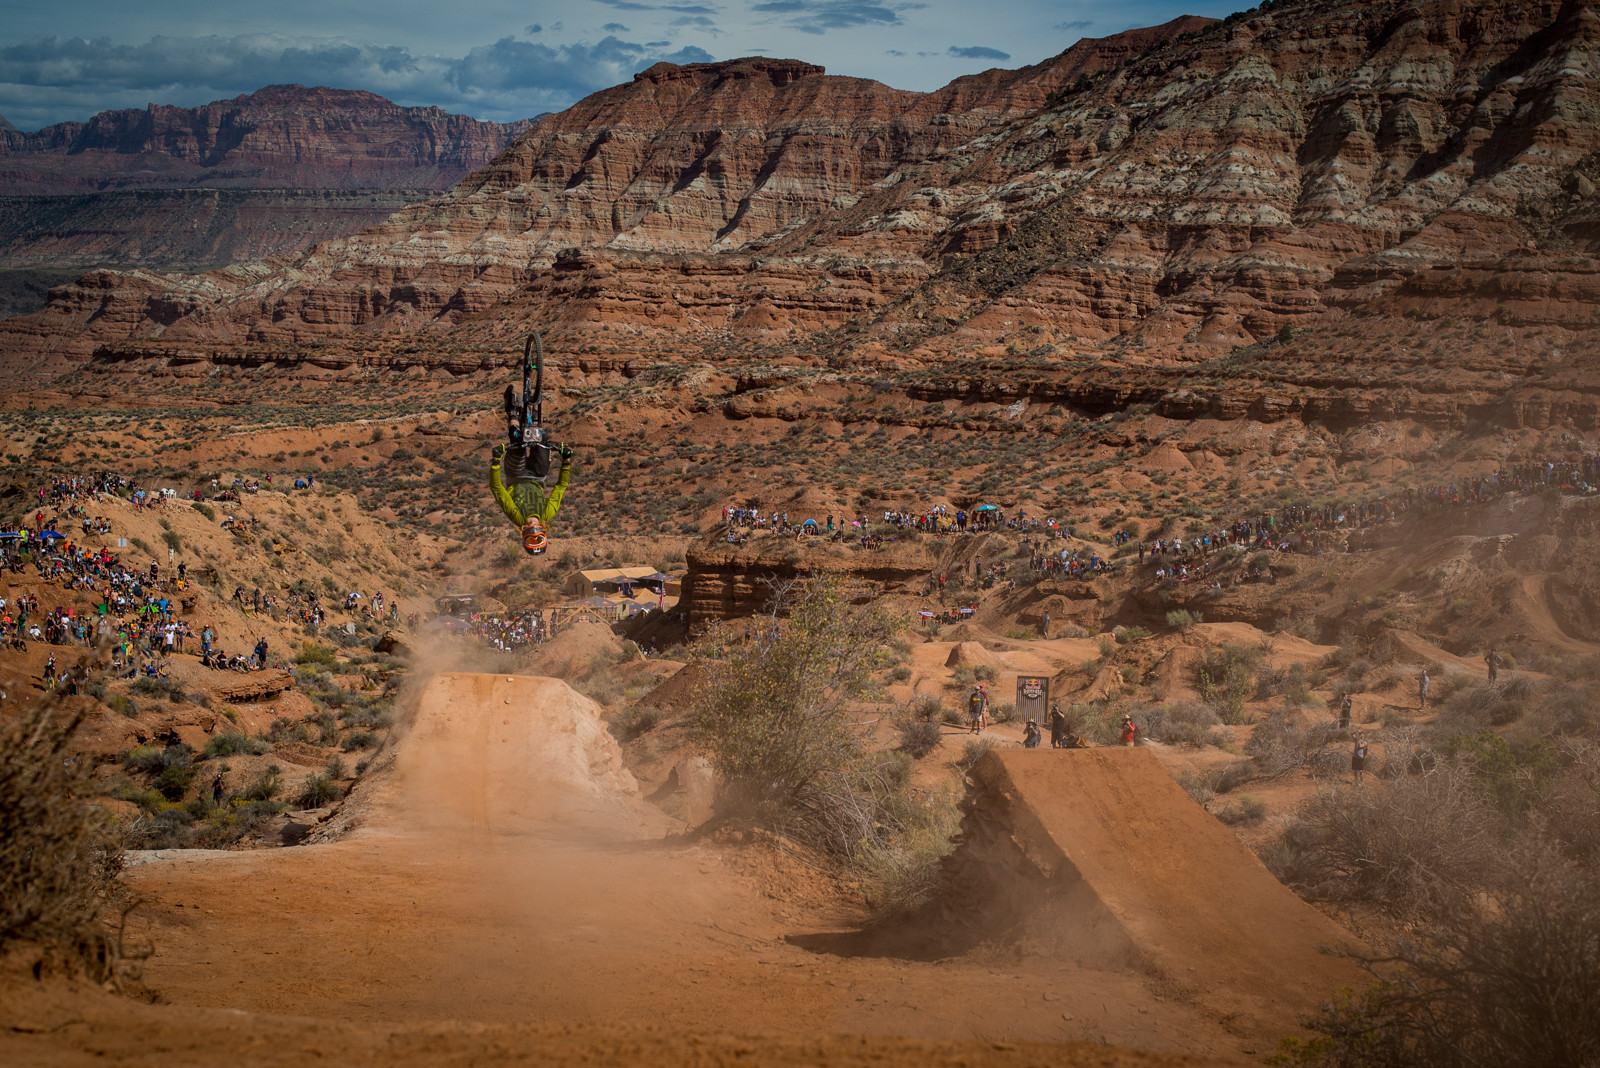 Kelly McGarry - 2015 Red Bull Rampage Finals - Mountain Biking Pictures - Vital MTB